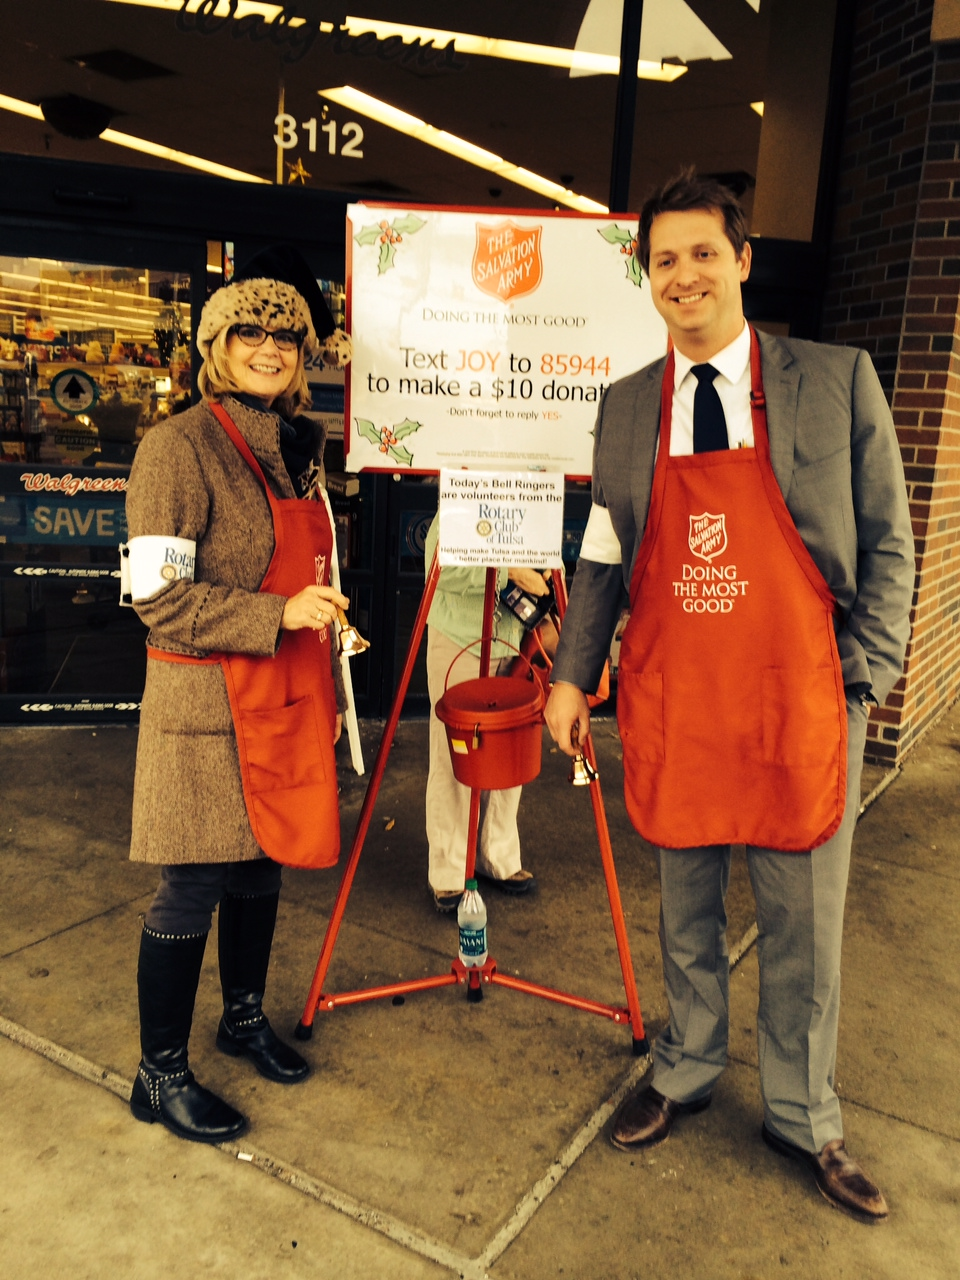 12-19-13 Salvation Army Bellringers